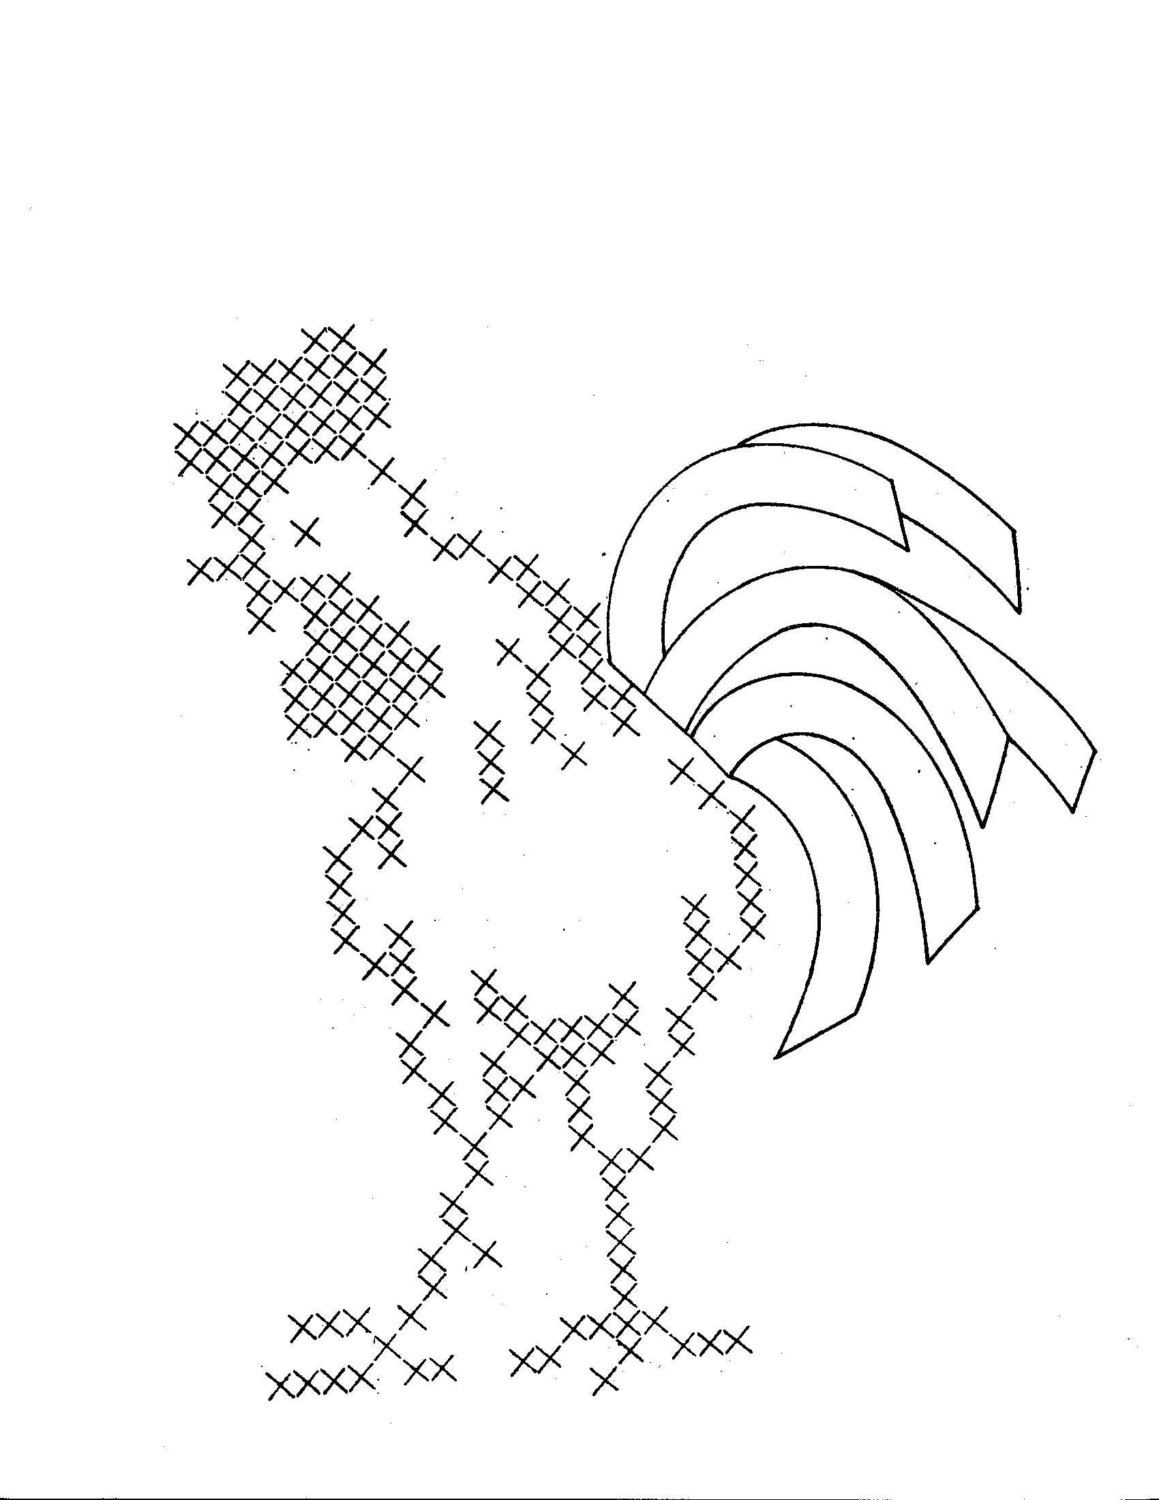 Hand embroidery pattern design 615 roosters for by blondiesspot hand embroidery pattern design 615 roosters for by blondiesspot bankloansurffo Choice Image